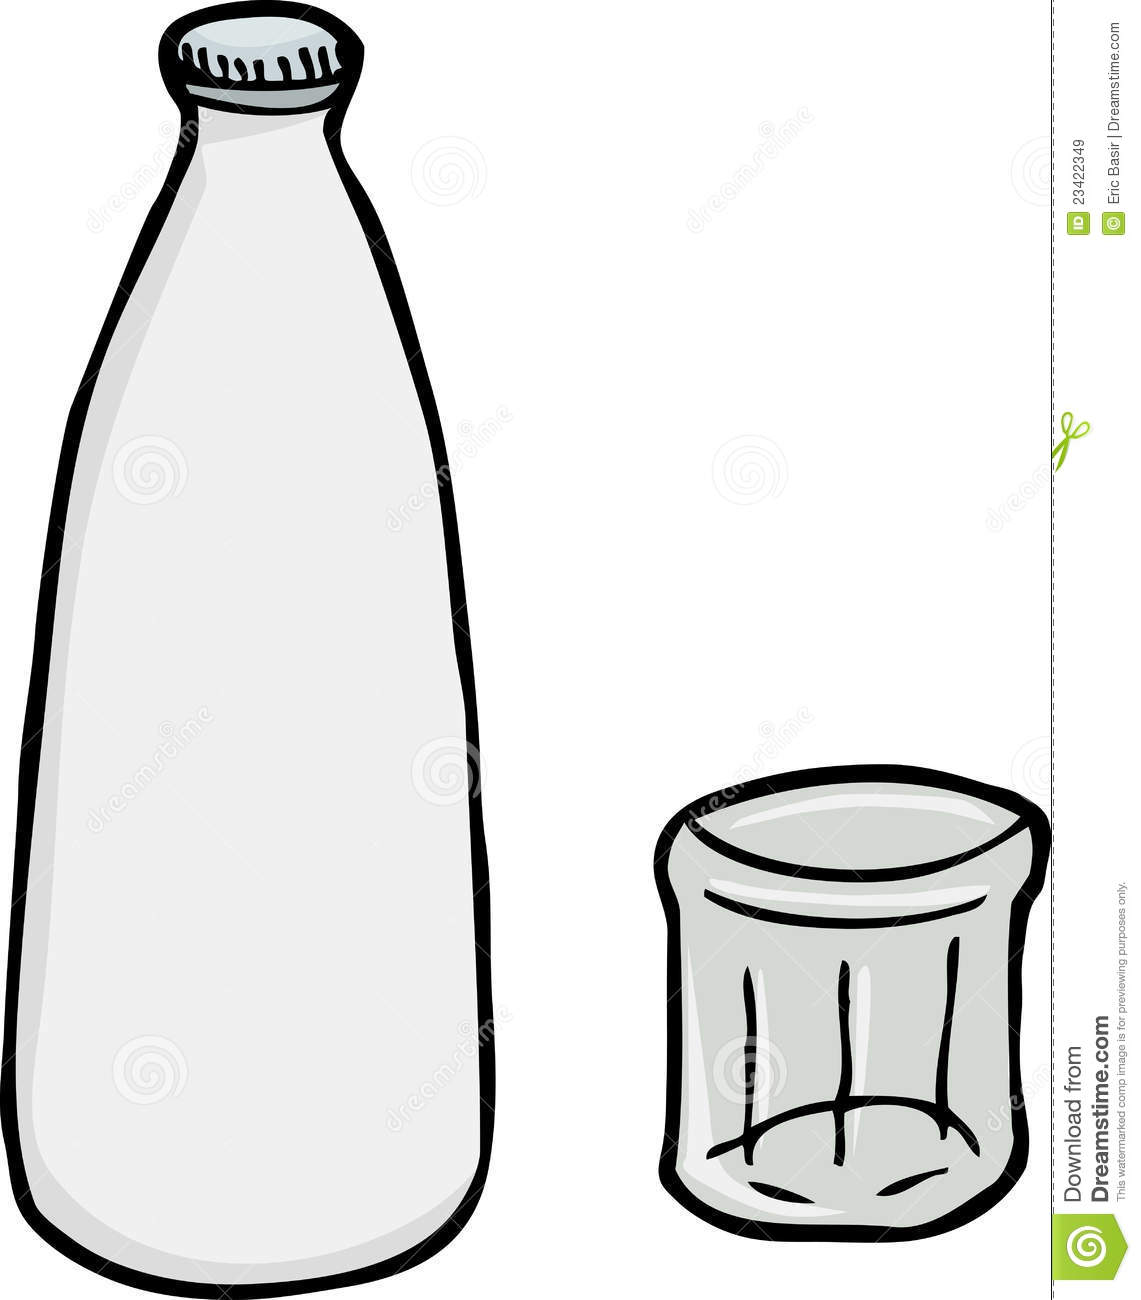 1141x1300 Milk Jug Clipart Milk Jar